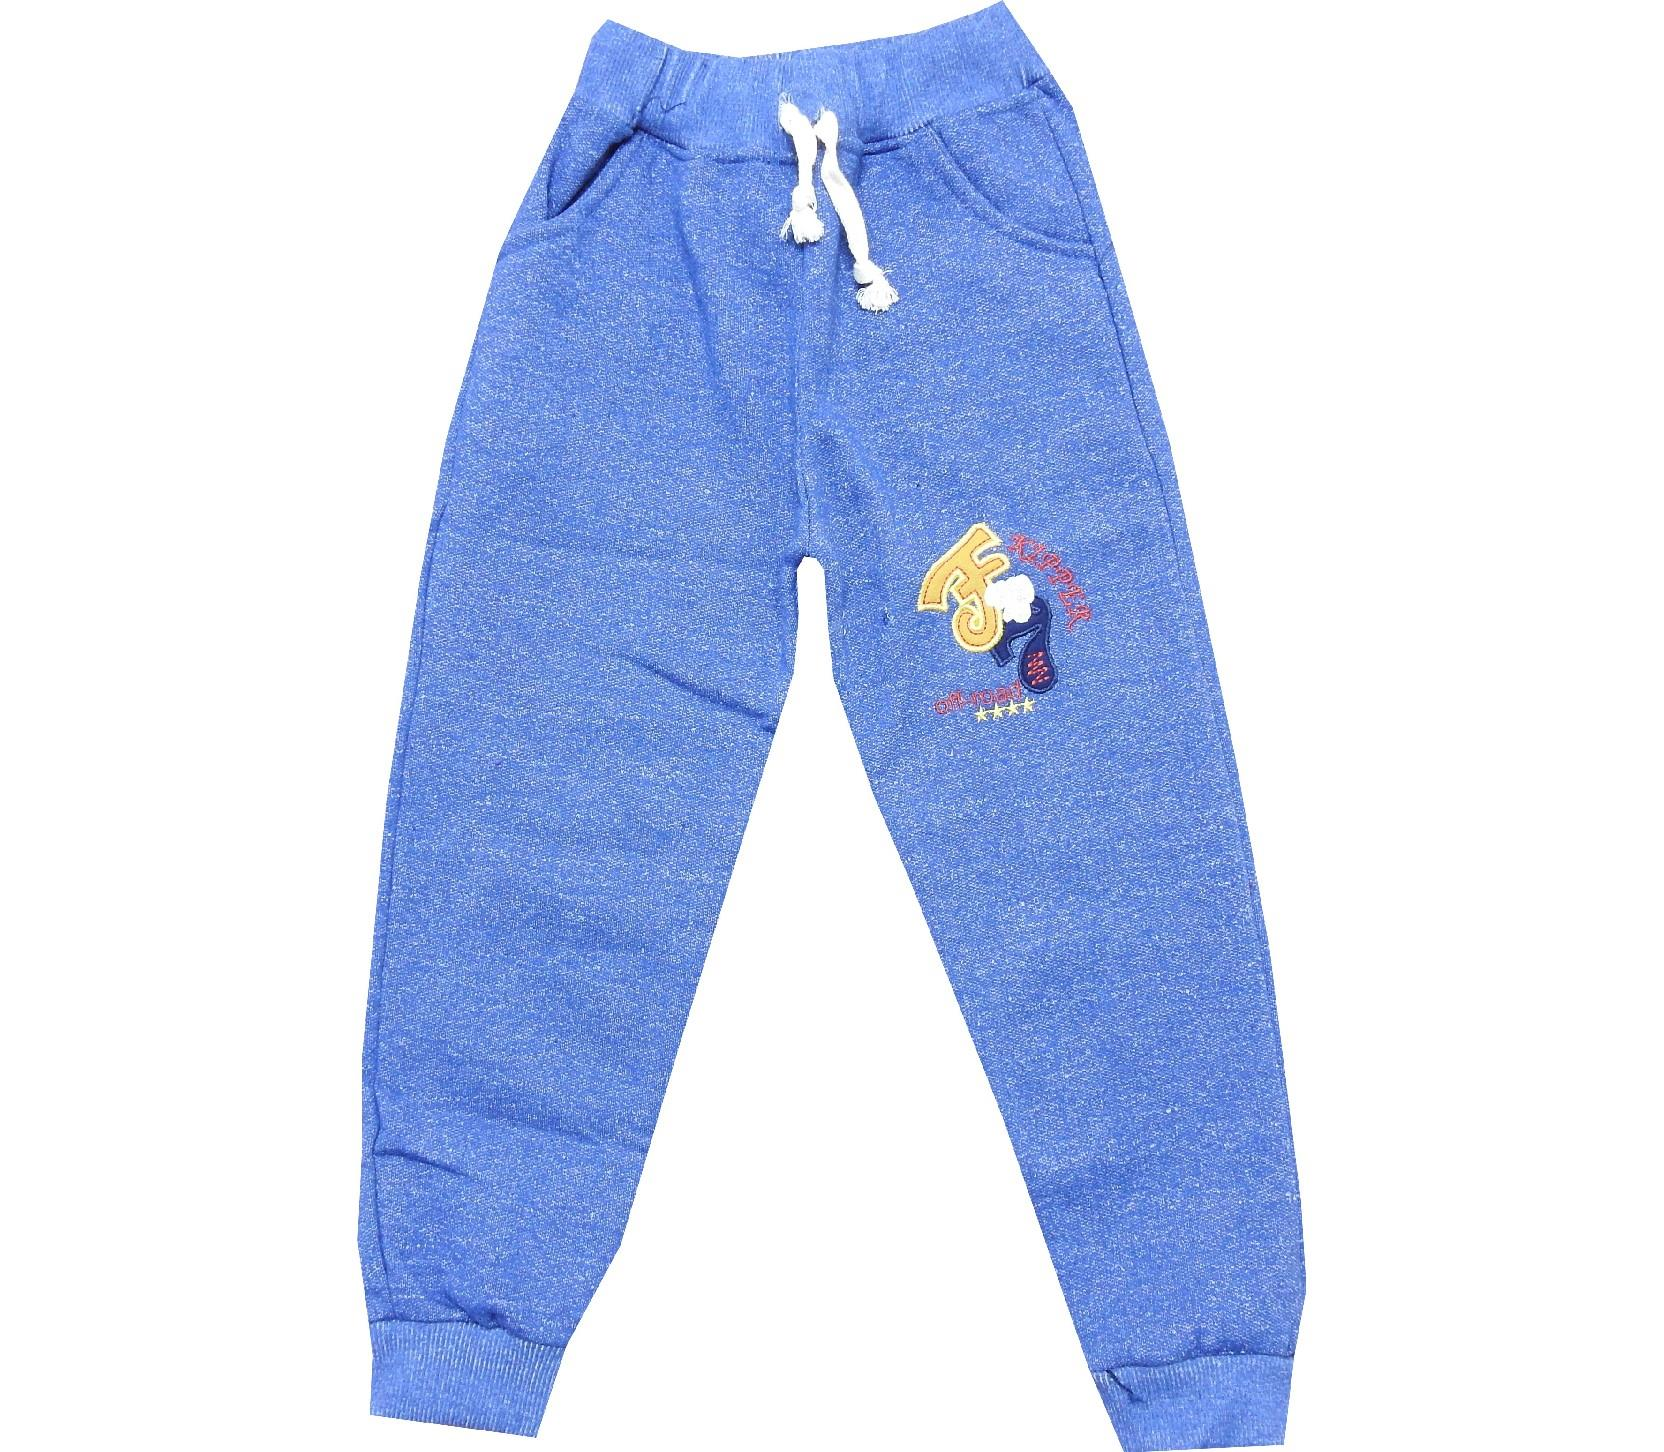 Wholesale ''F7'' printed trouser for kids (9-10-11-12 age)